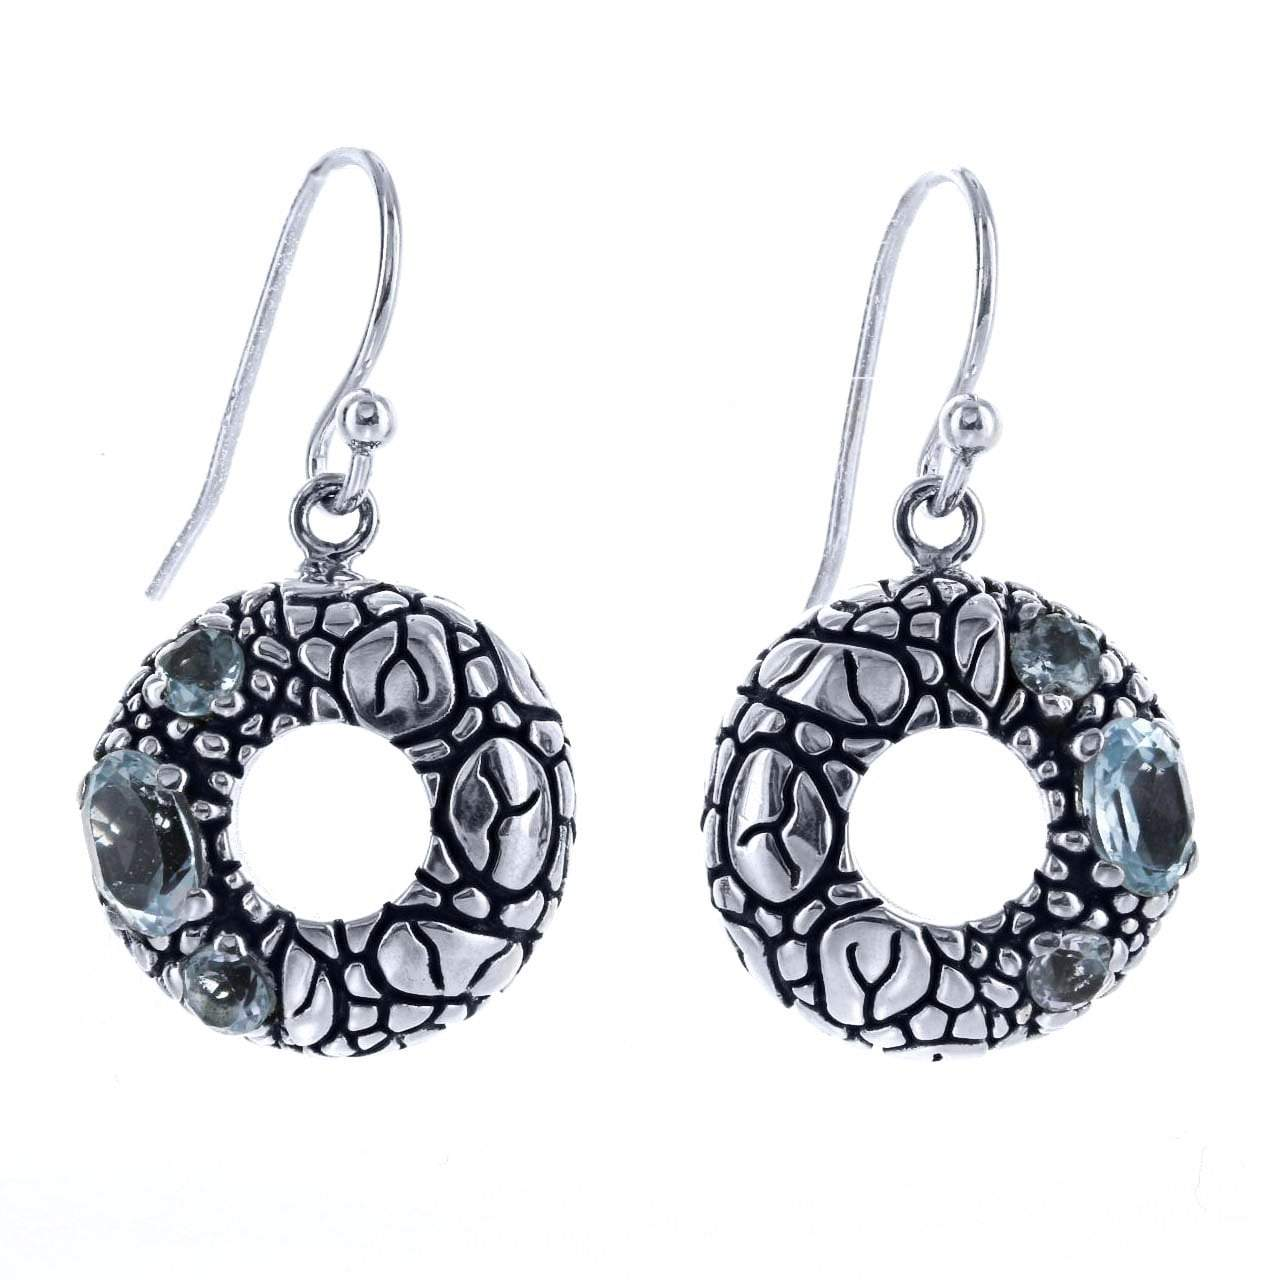 David Beck Bali Open Circle Earrings in Sterling Silver and Blue Topaz